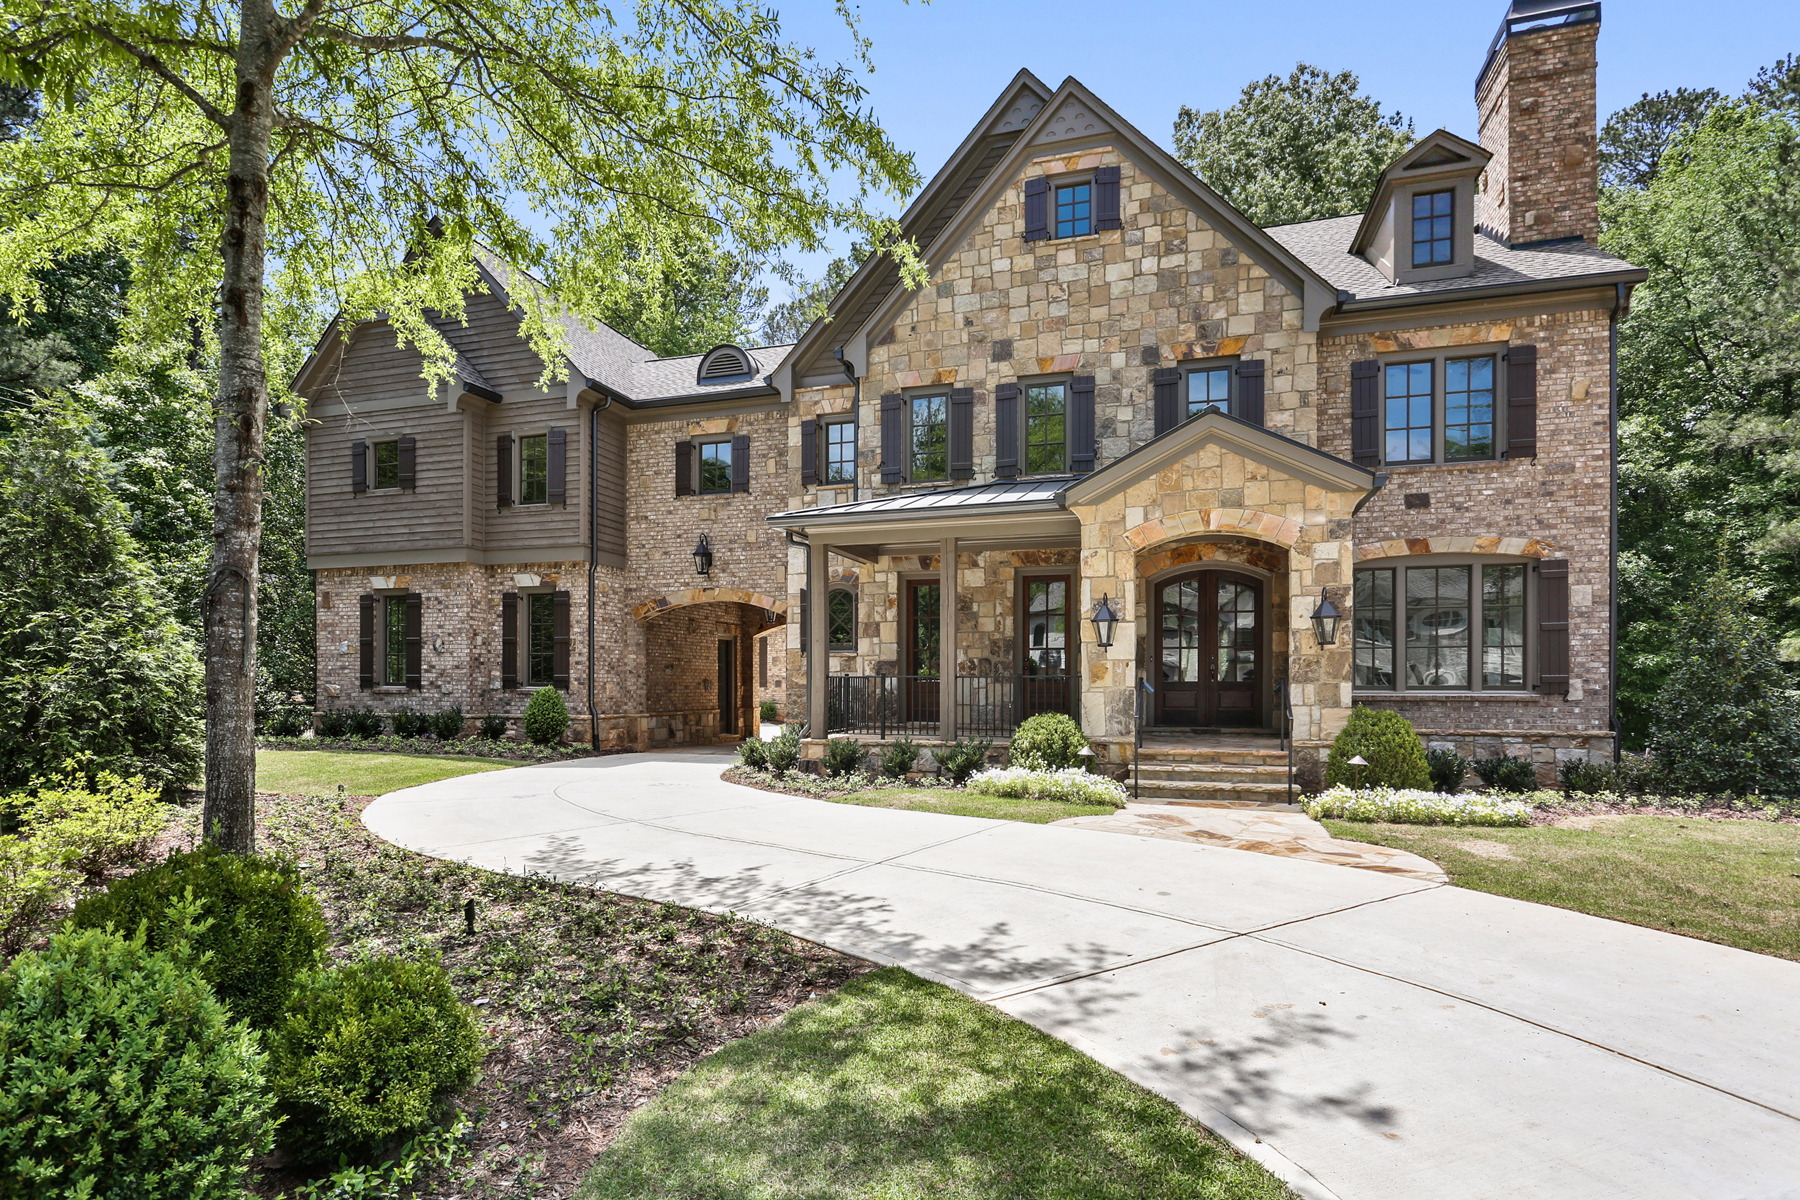 Moradia para Venda às Stunning Brick And Stone New Construction In Prime Sandy Springs Location 200 Rivermere Way Atlanta, Geórgia, 30350 Estados Unidos